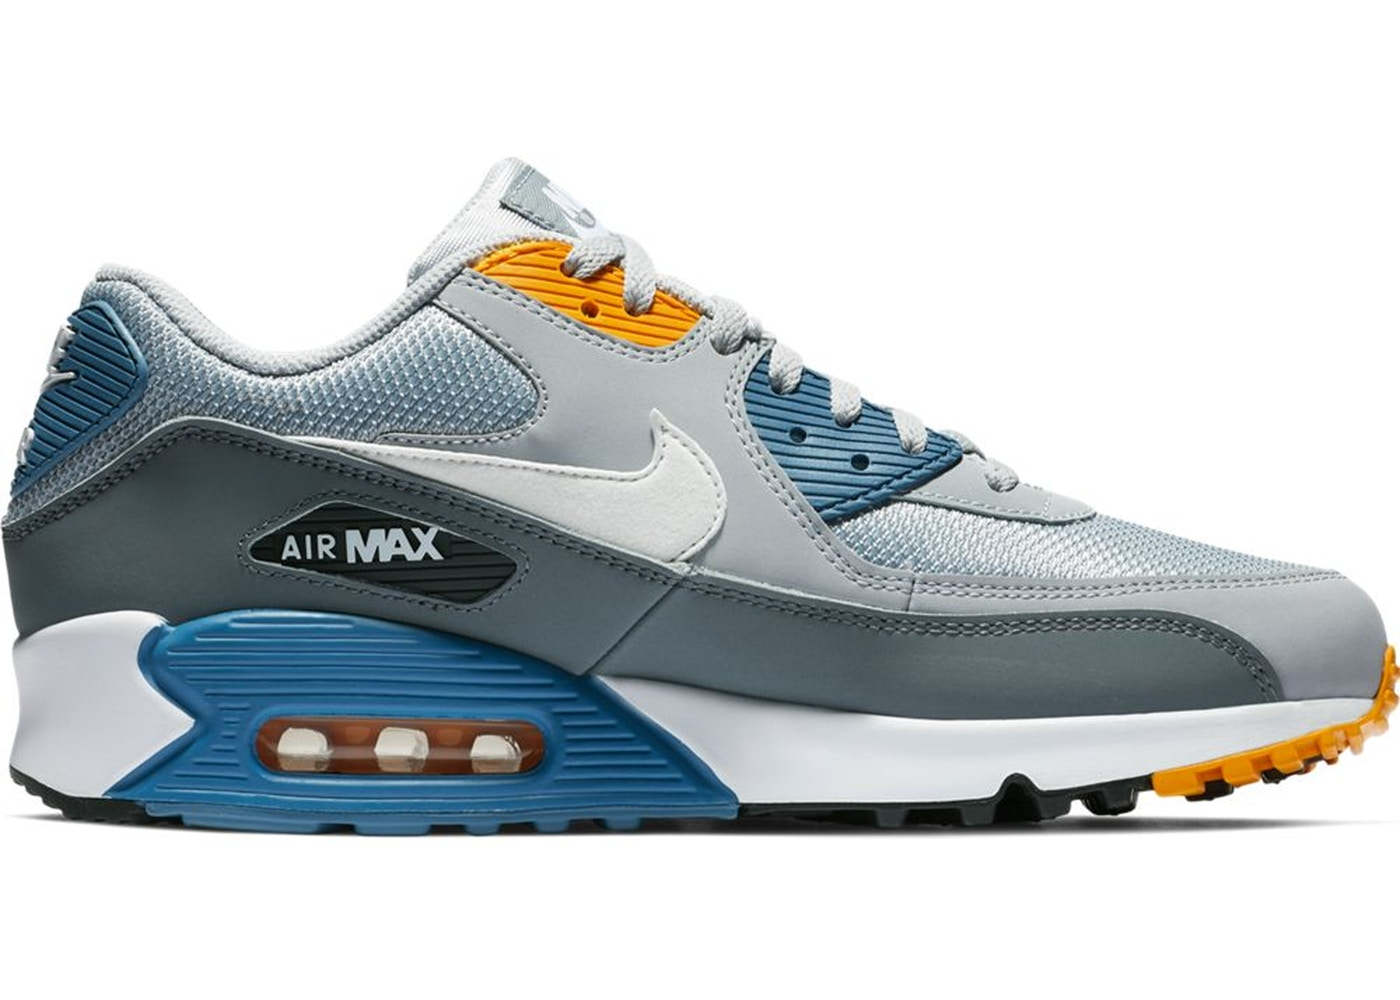 half off 6e4e1 fb375 Buy Nike Air Max 90 Shoes   Deadstock Sneakers